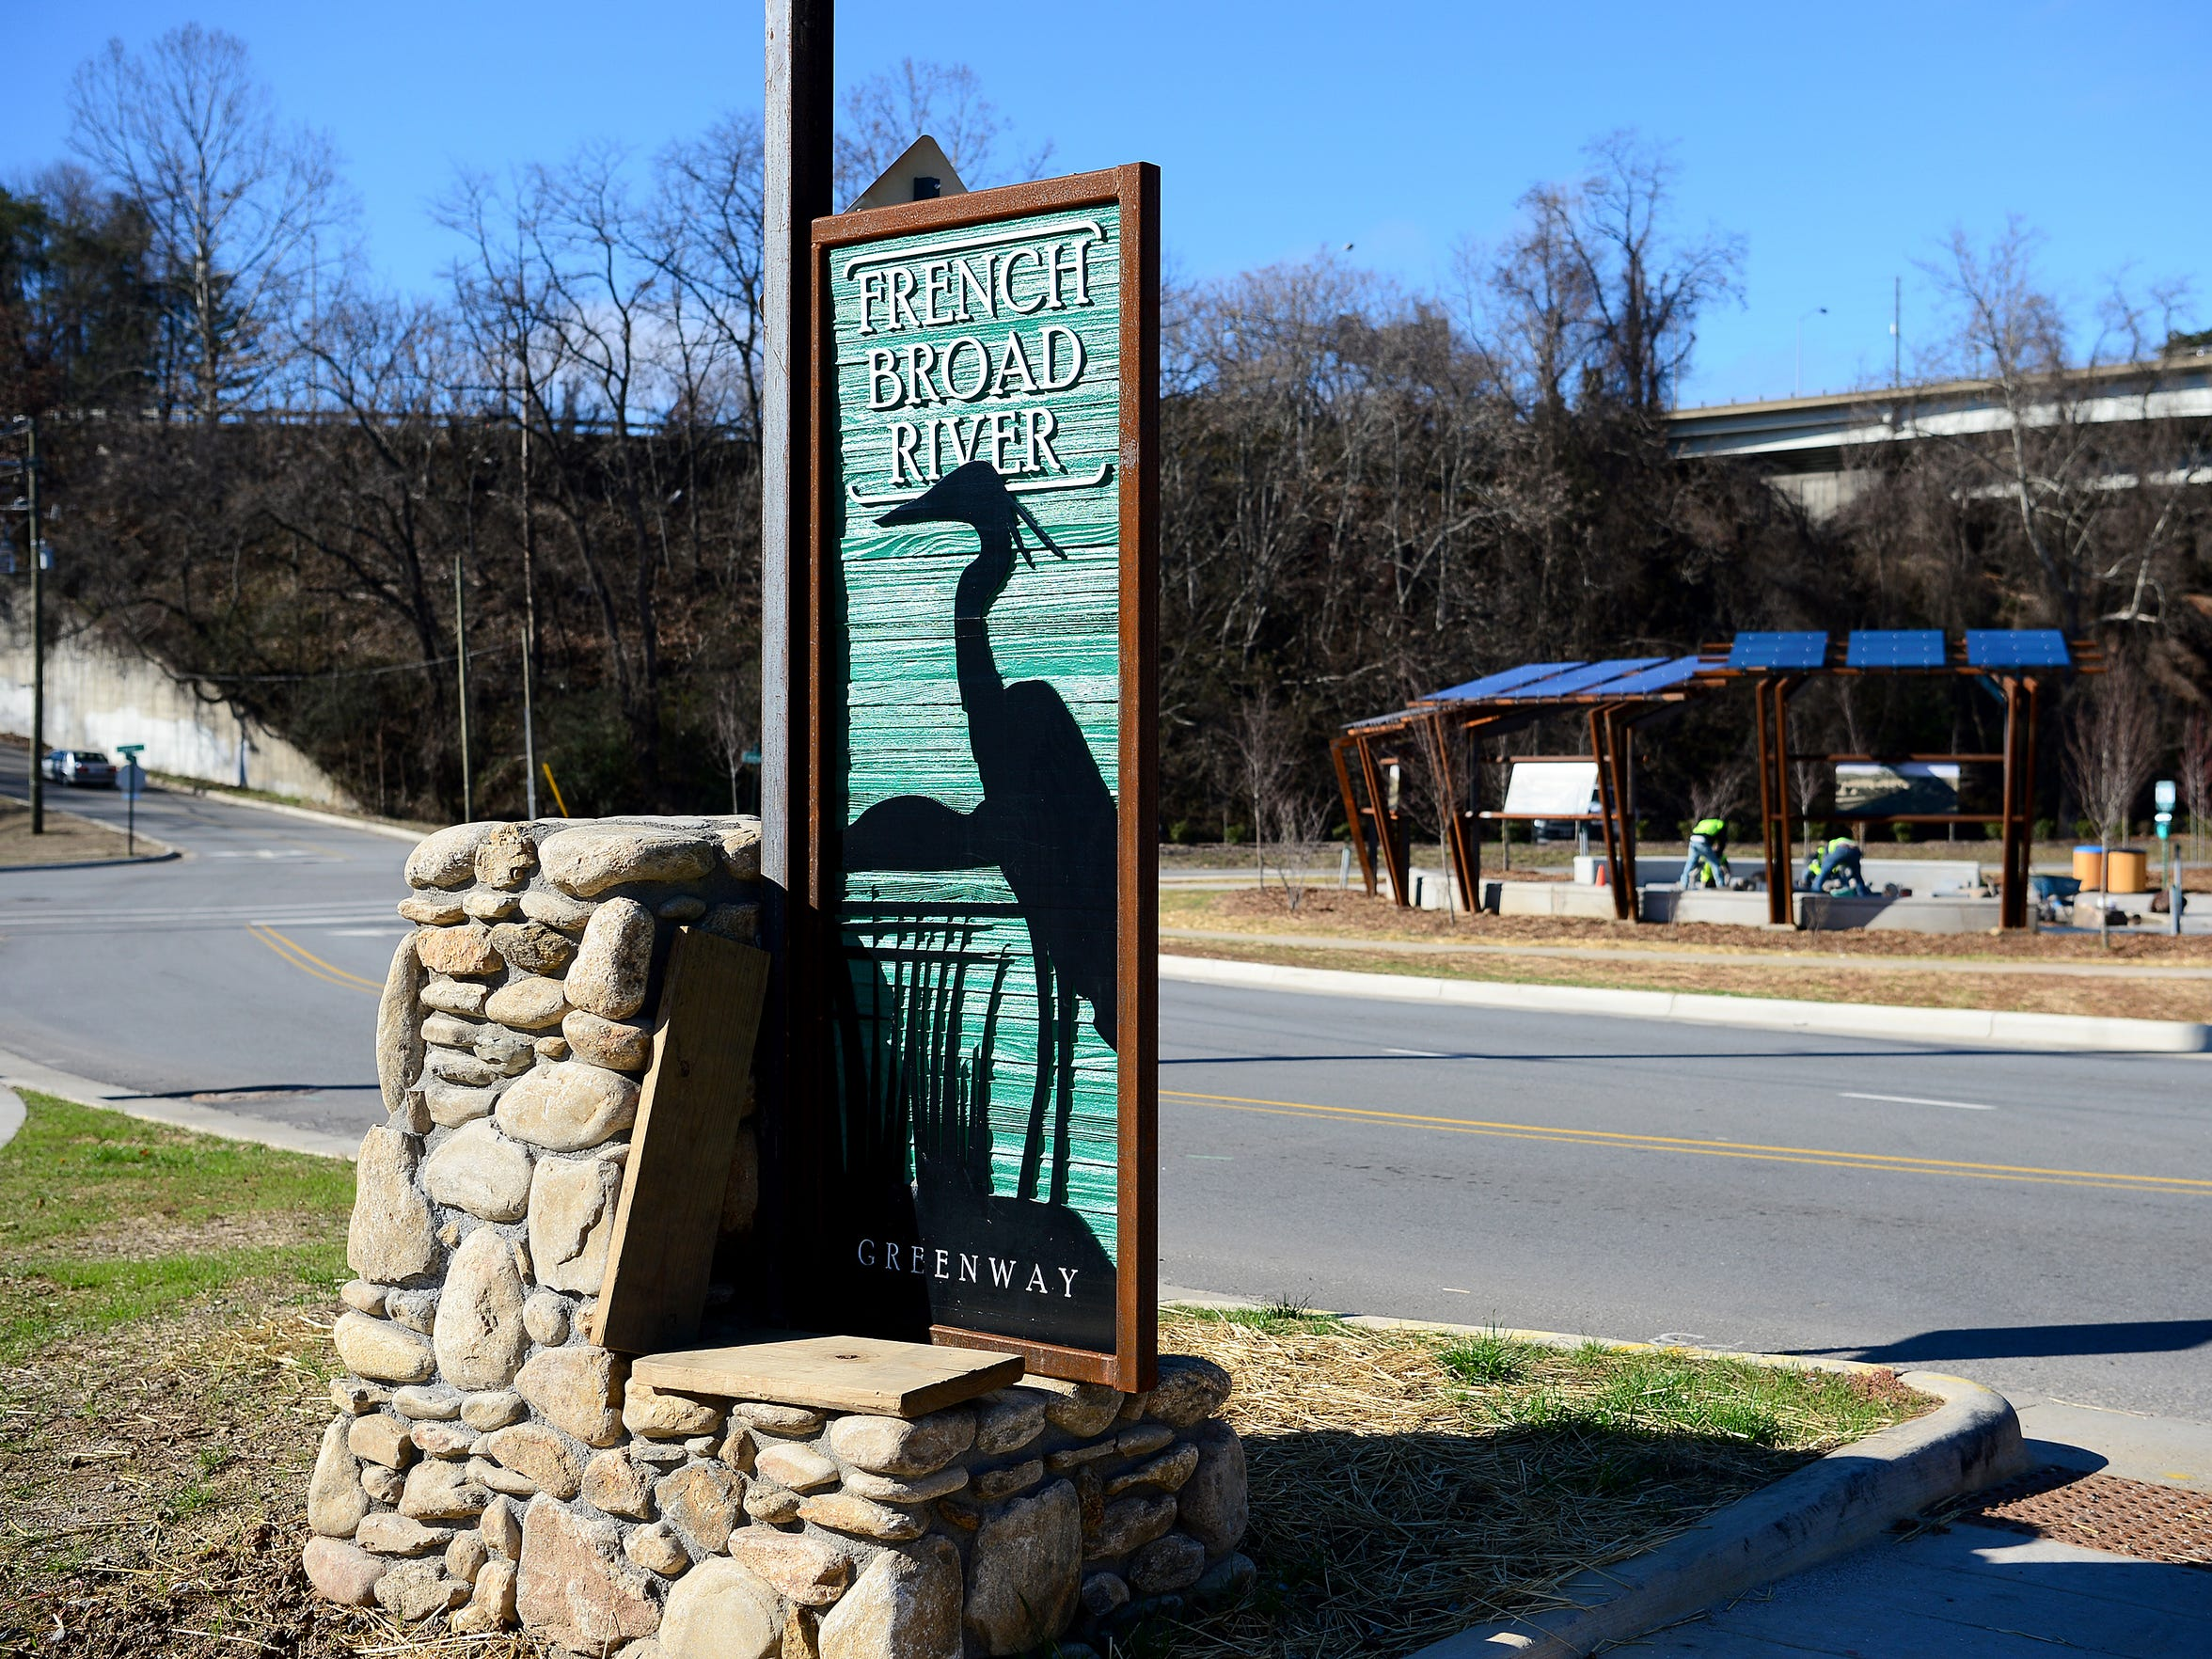 The newest section of the French Broad River Greenway